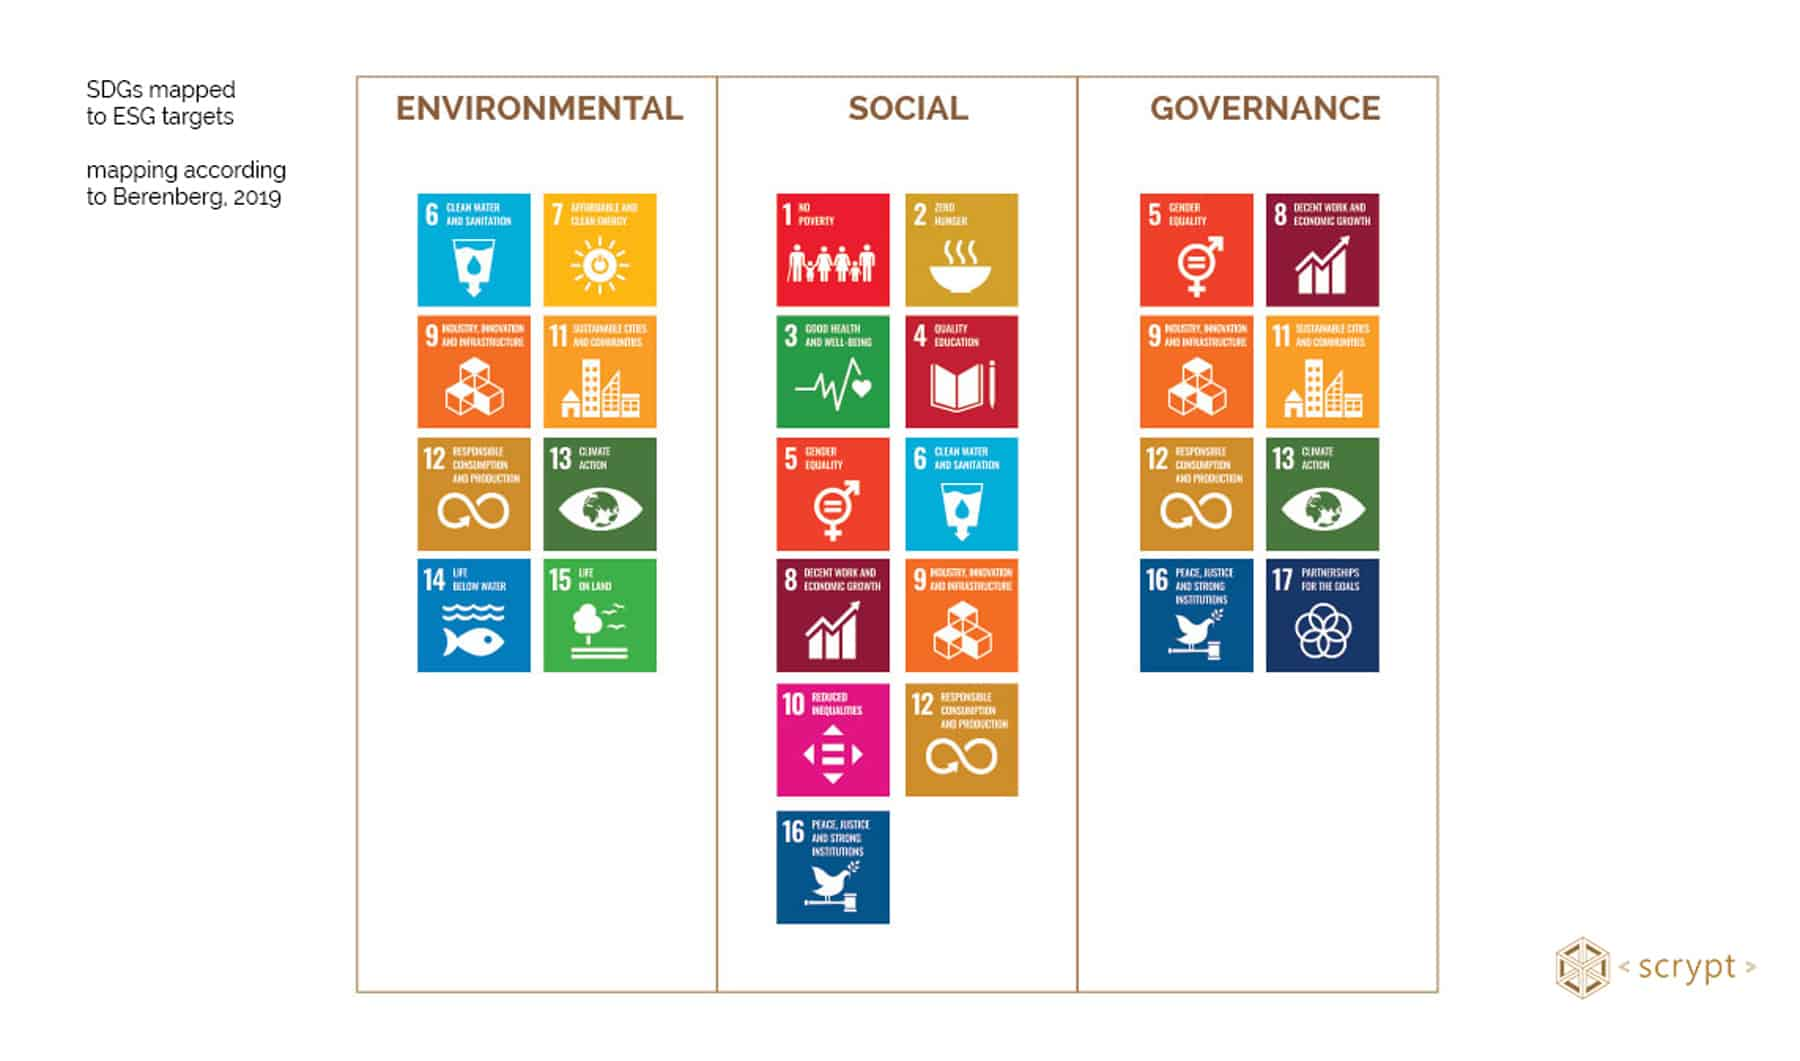 SDGs mapped to ESG targets according to Berenberg 2019